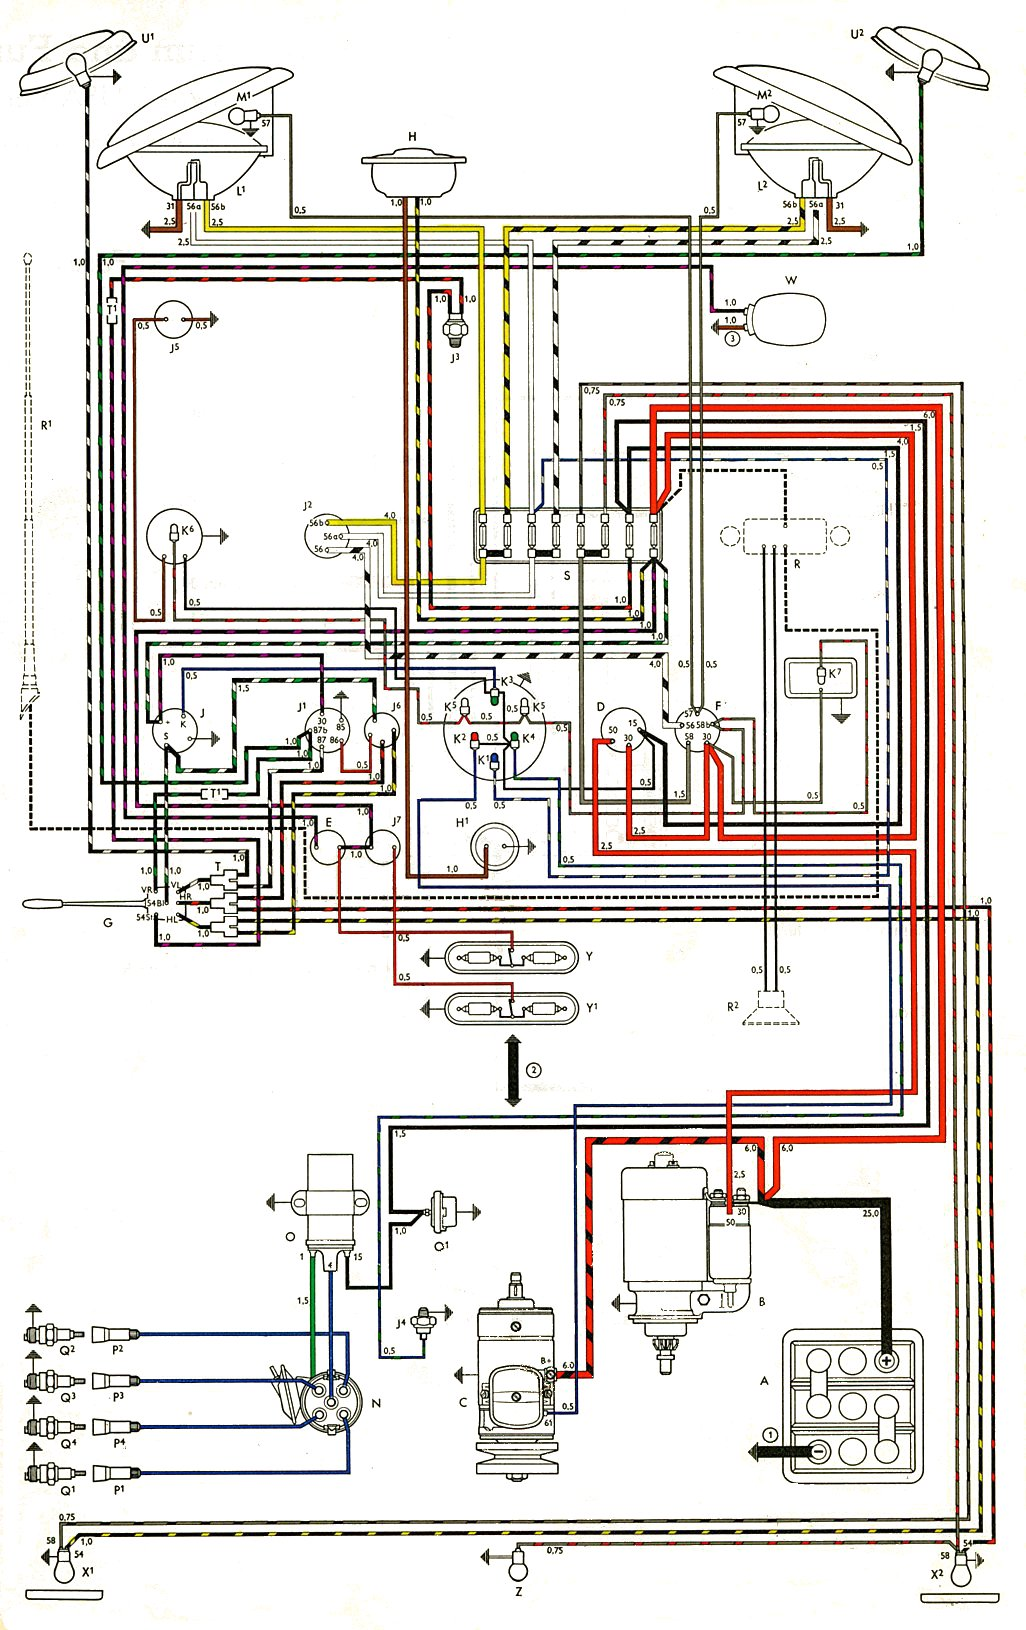 bus_63_USA thesamba com type 2 wiring diagrams Electrical Wiring Diagrams at reclaimingppi.co